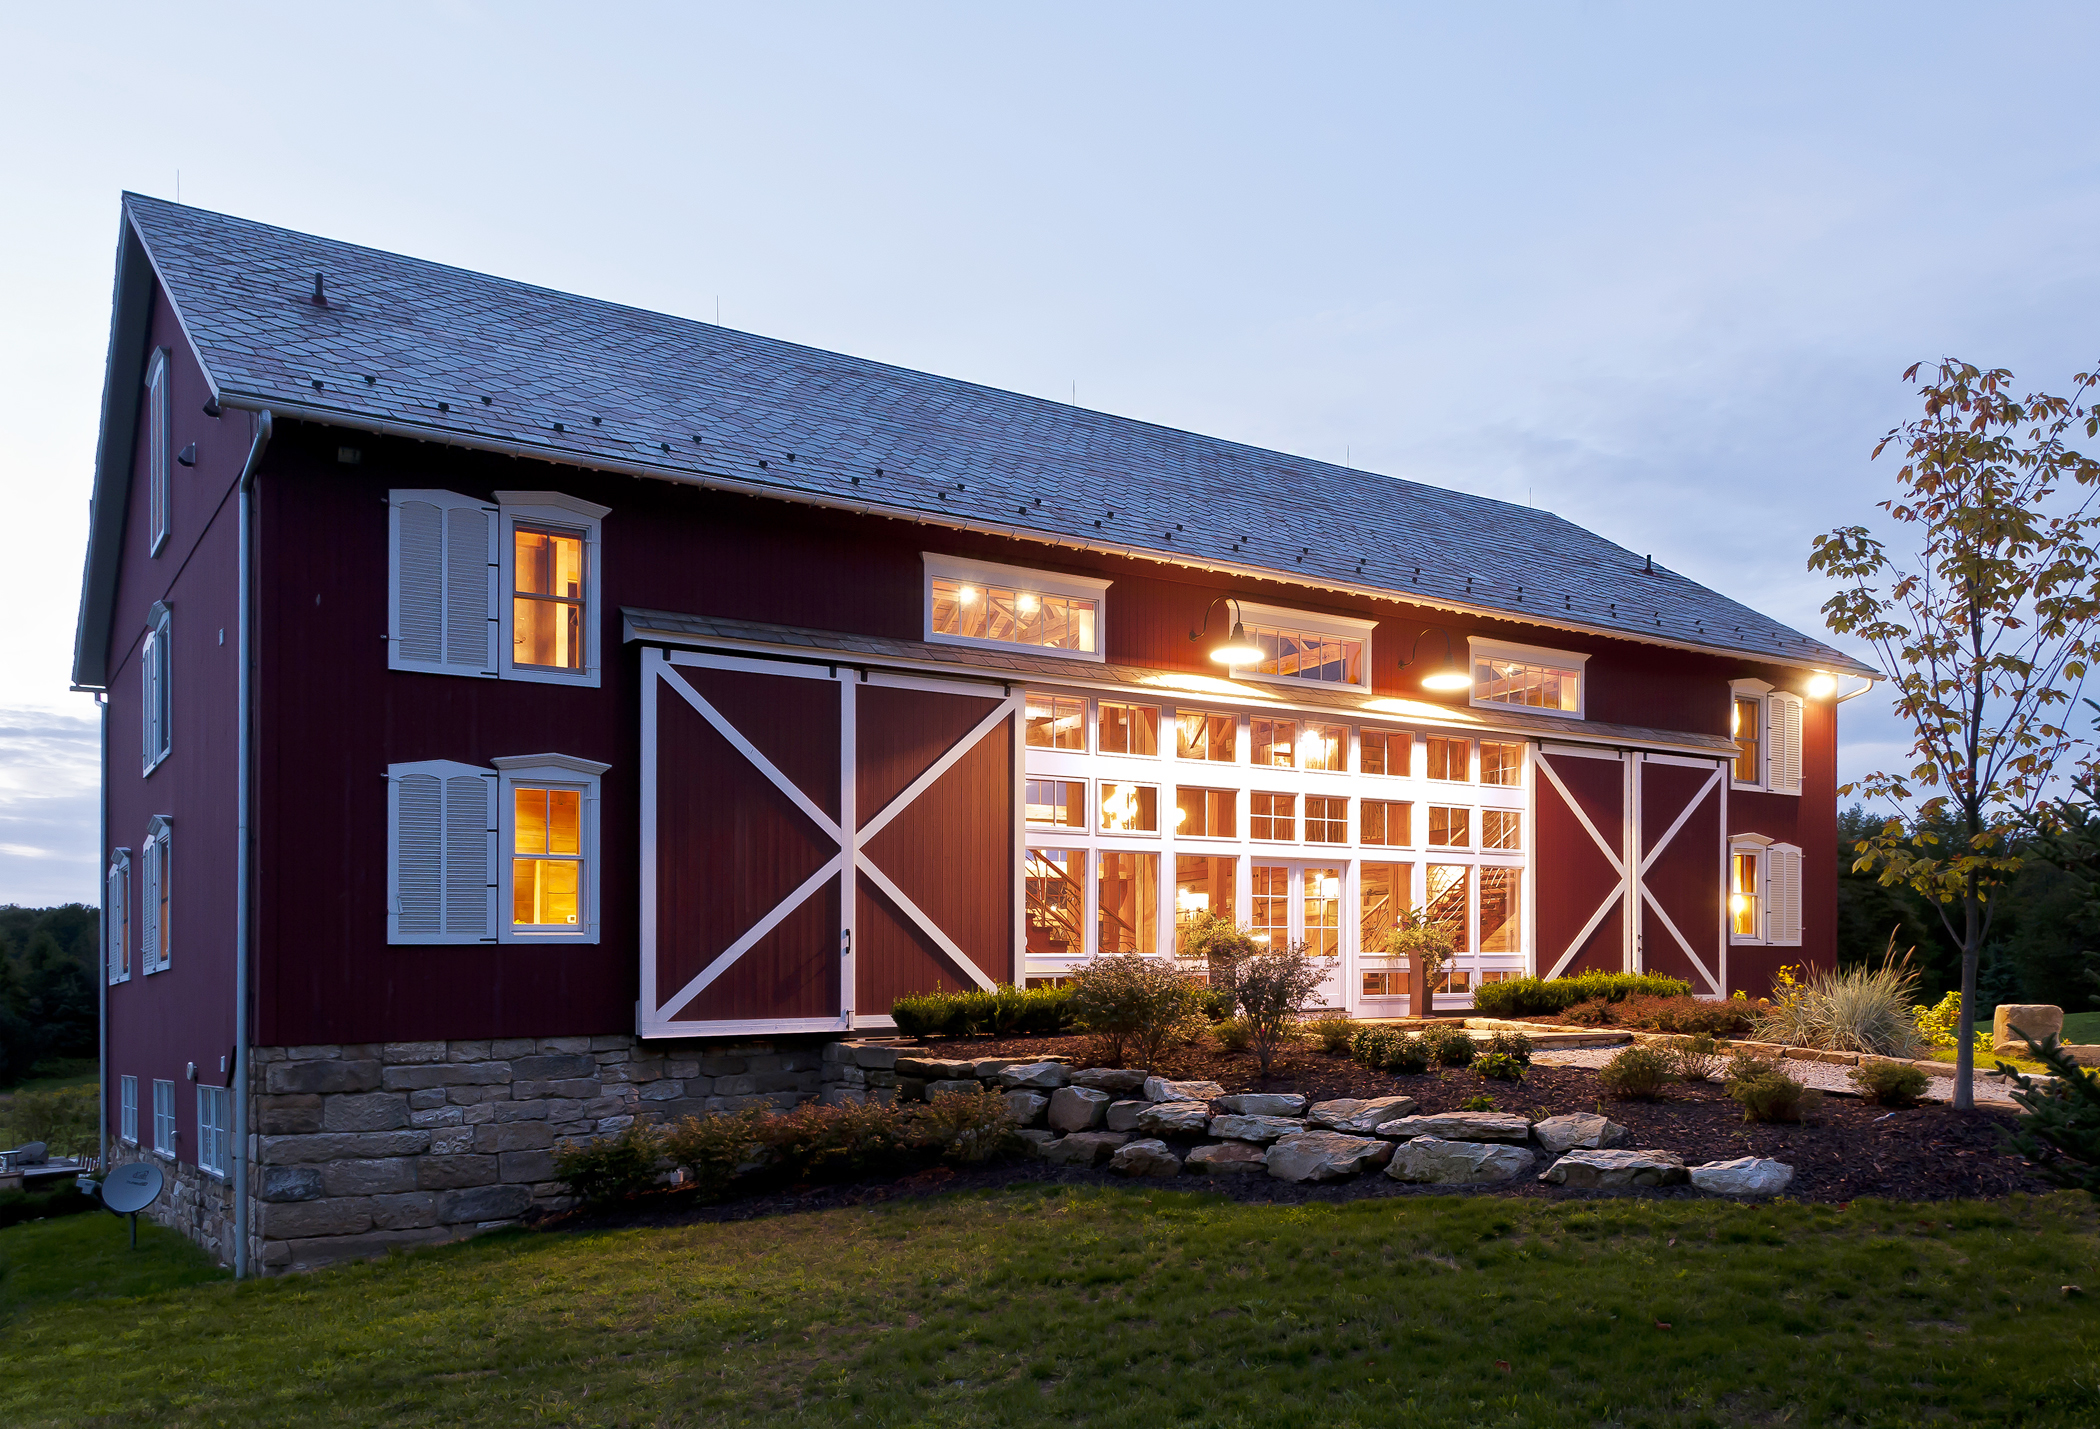 Barn home archives blackburn architects p c Small barn style homes